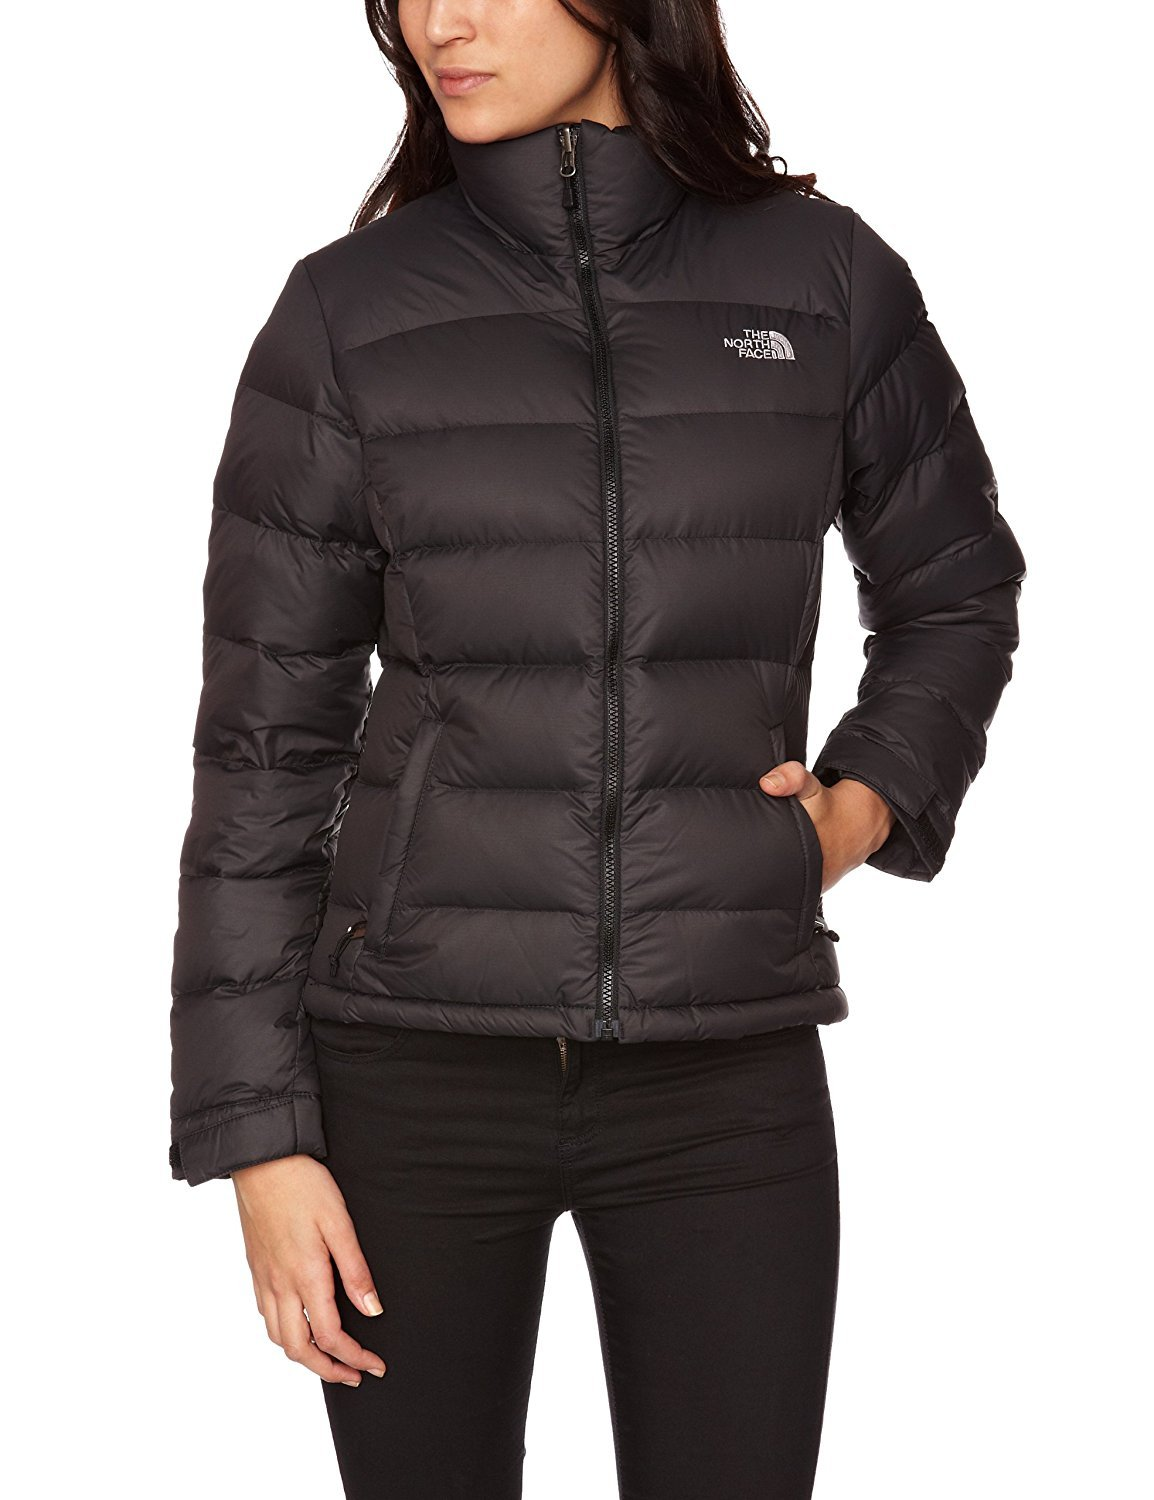 The North Face Womens Nuptse 2 Down Jacket TNF Black Medium [並行輸入品] B075CKBK3M